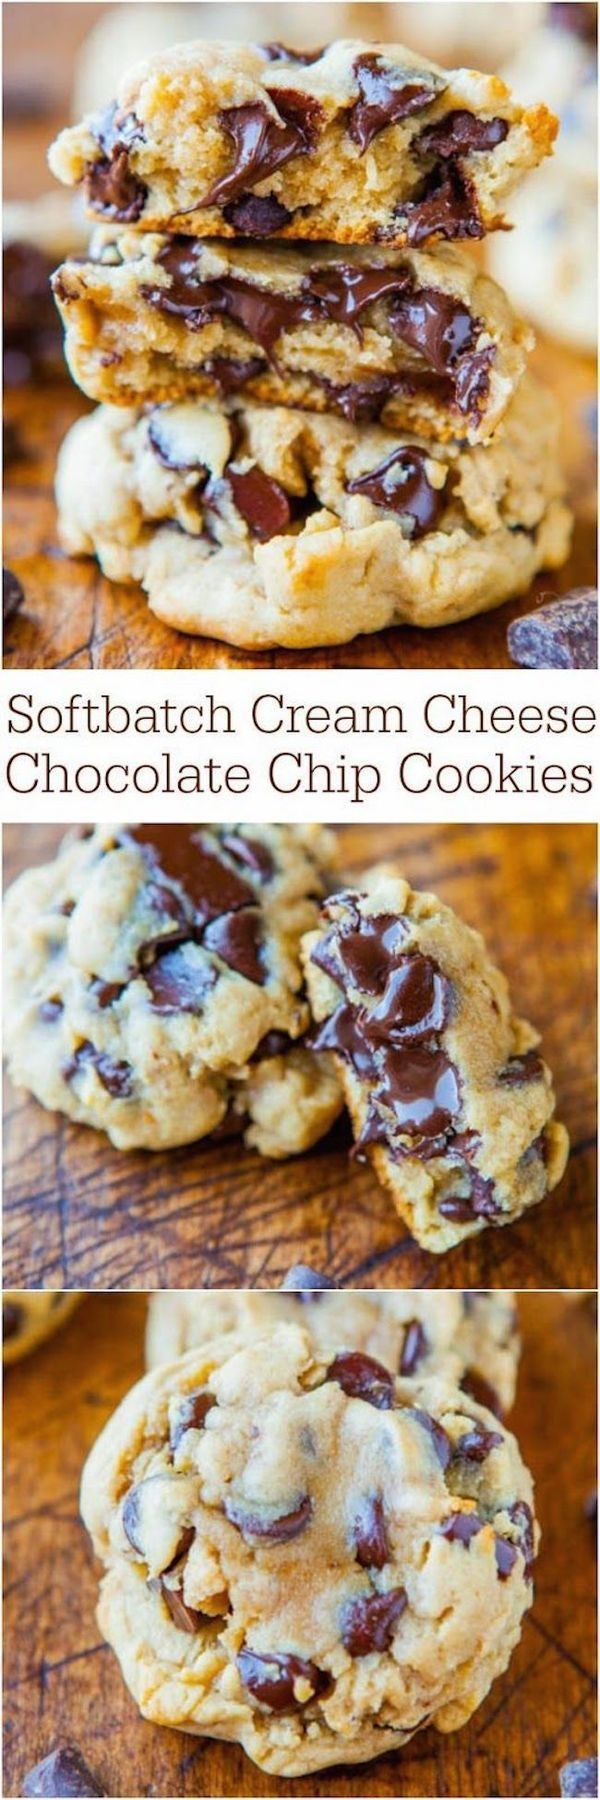 Get the recipe ♥ Softbatch Cream Cheese Chocolate Chip Cookies #besttoeat @recipes_to_go